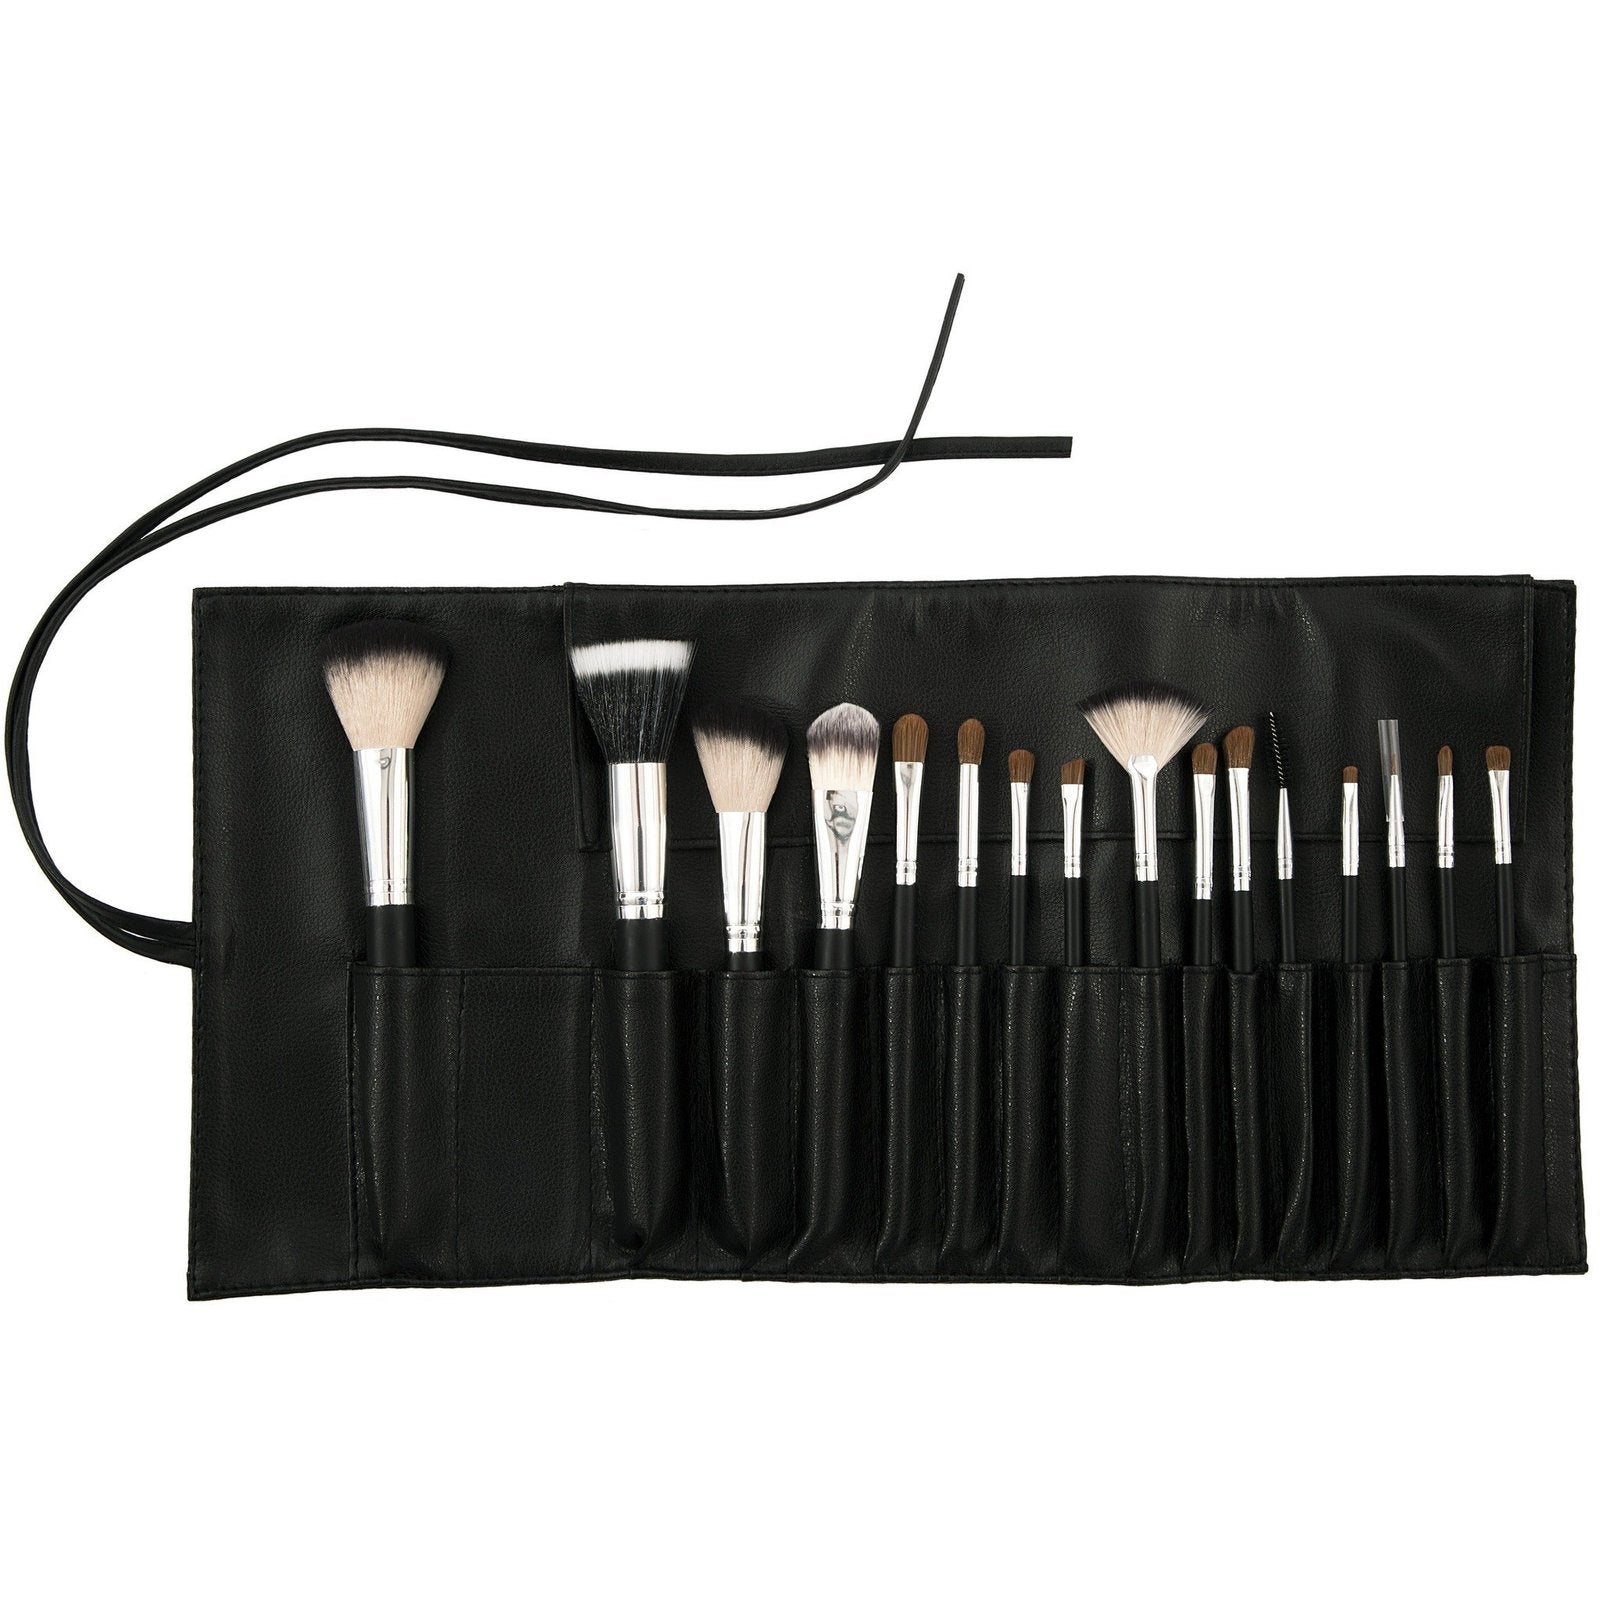 Crown Brush 706 Pro Essentials Brush Set